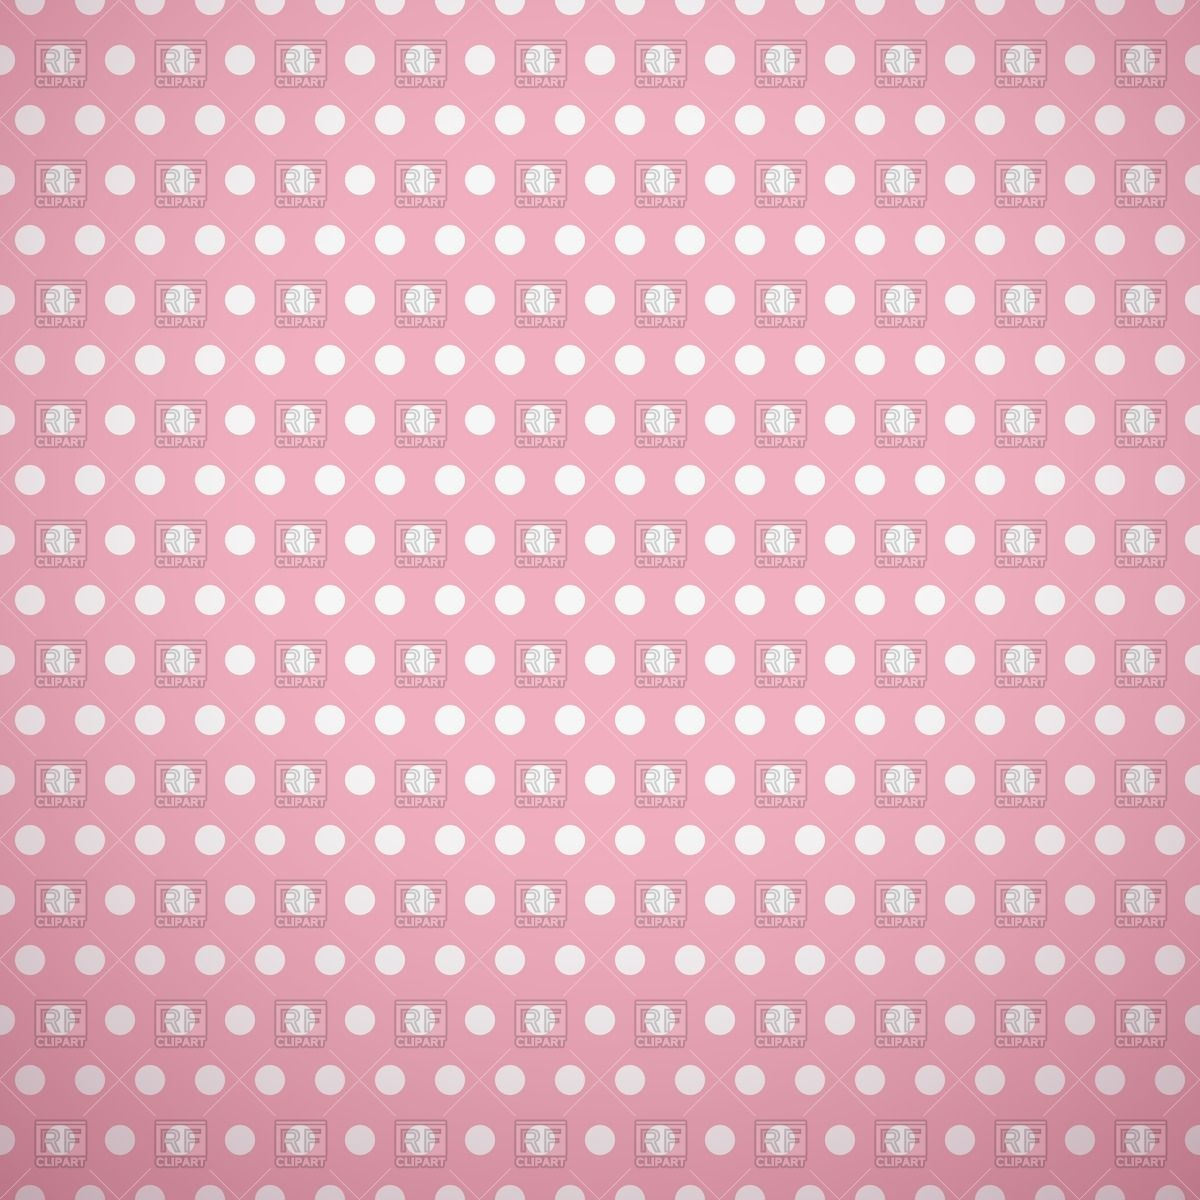 White Polka Dot Background Download Royalty Free Vector Clipart  Eps